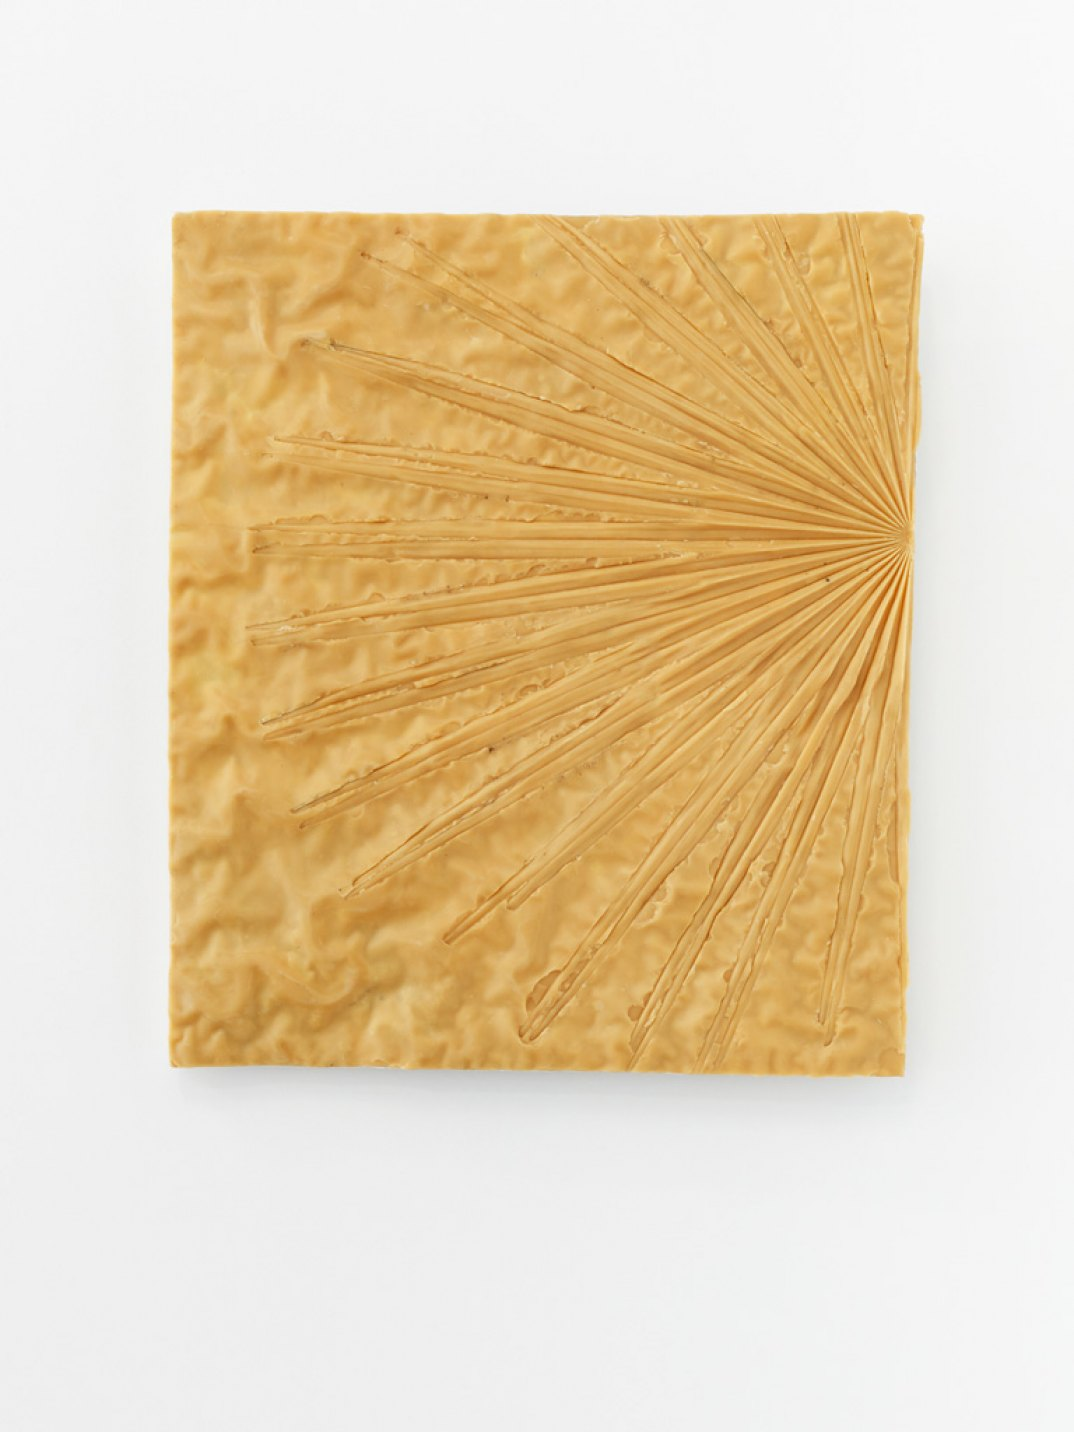 Giulio Delvè, <em>See the sun from behind bars</em>, 2017, carnauba wax, beeswax, plaster,&nbsp;58 × 50 × 5 cm - Mendes Wood DM